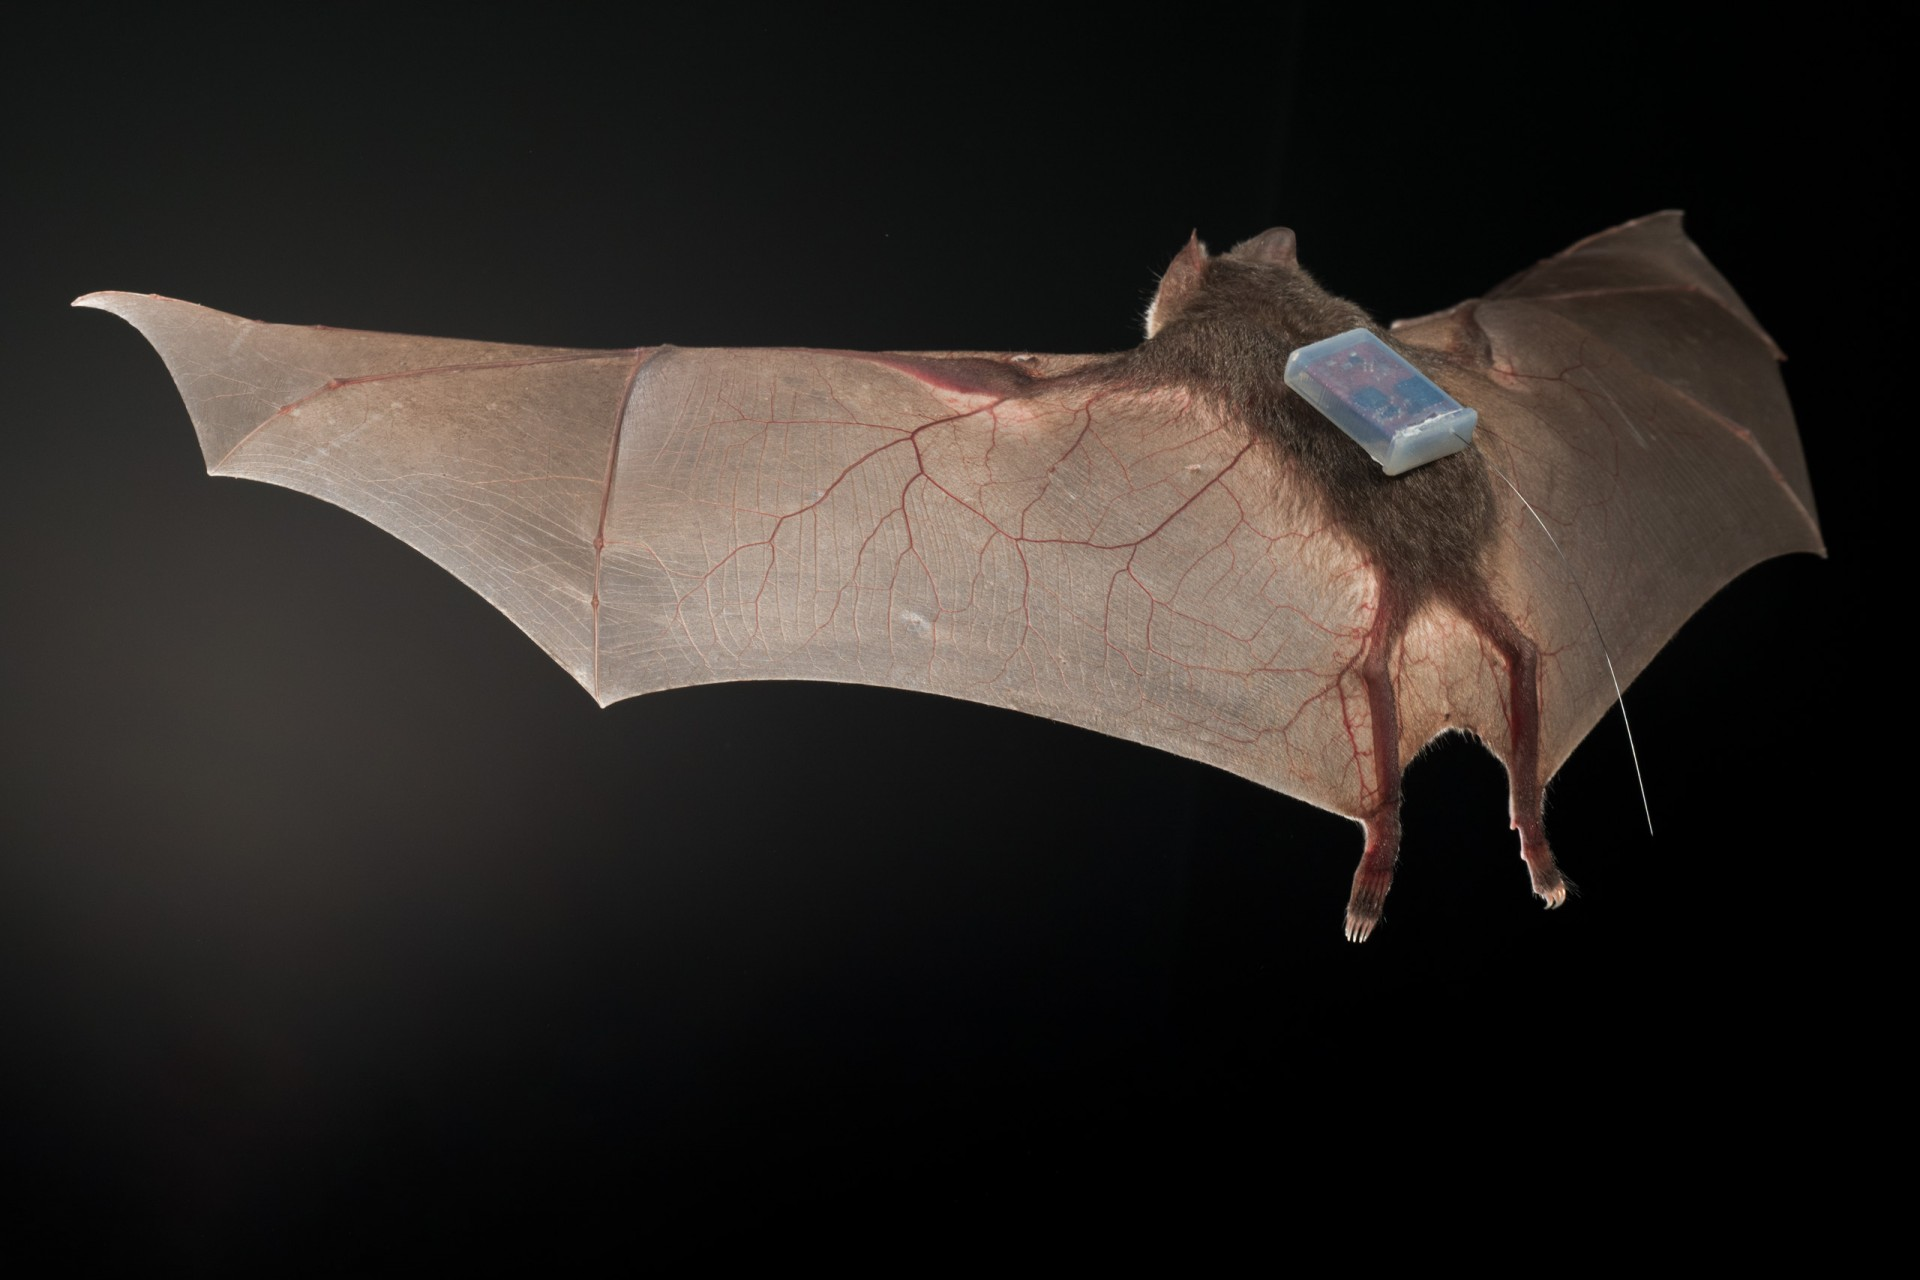 Vampire bat bonding persists from the lab to the wild